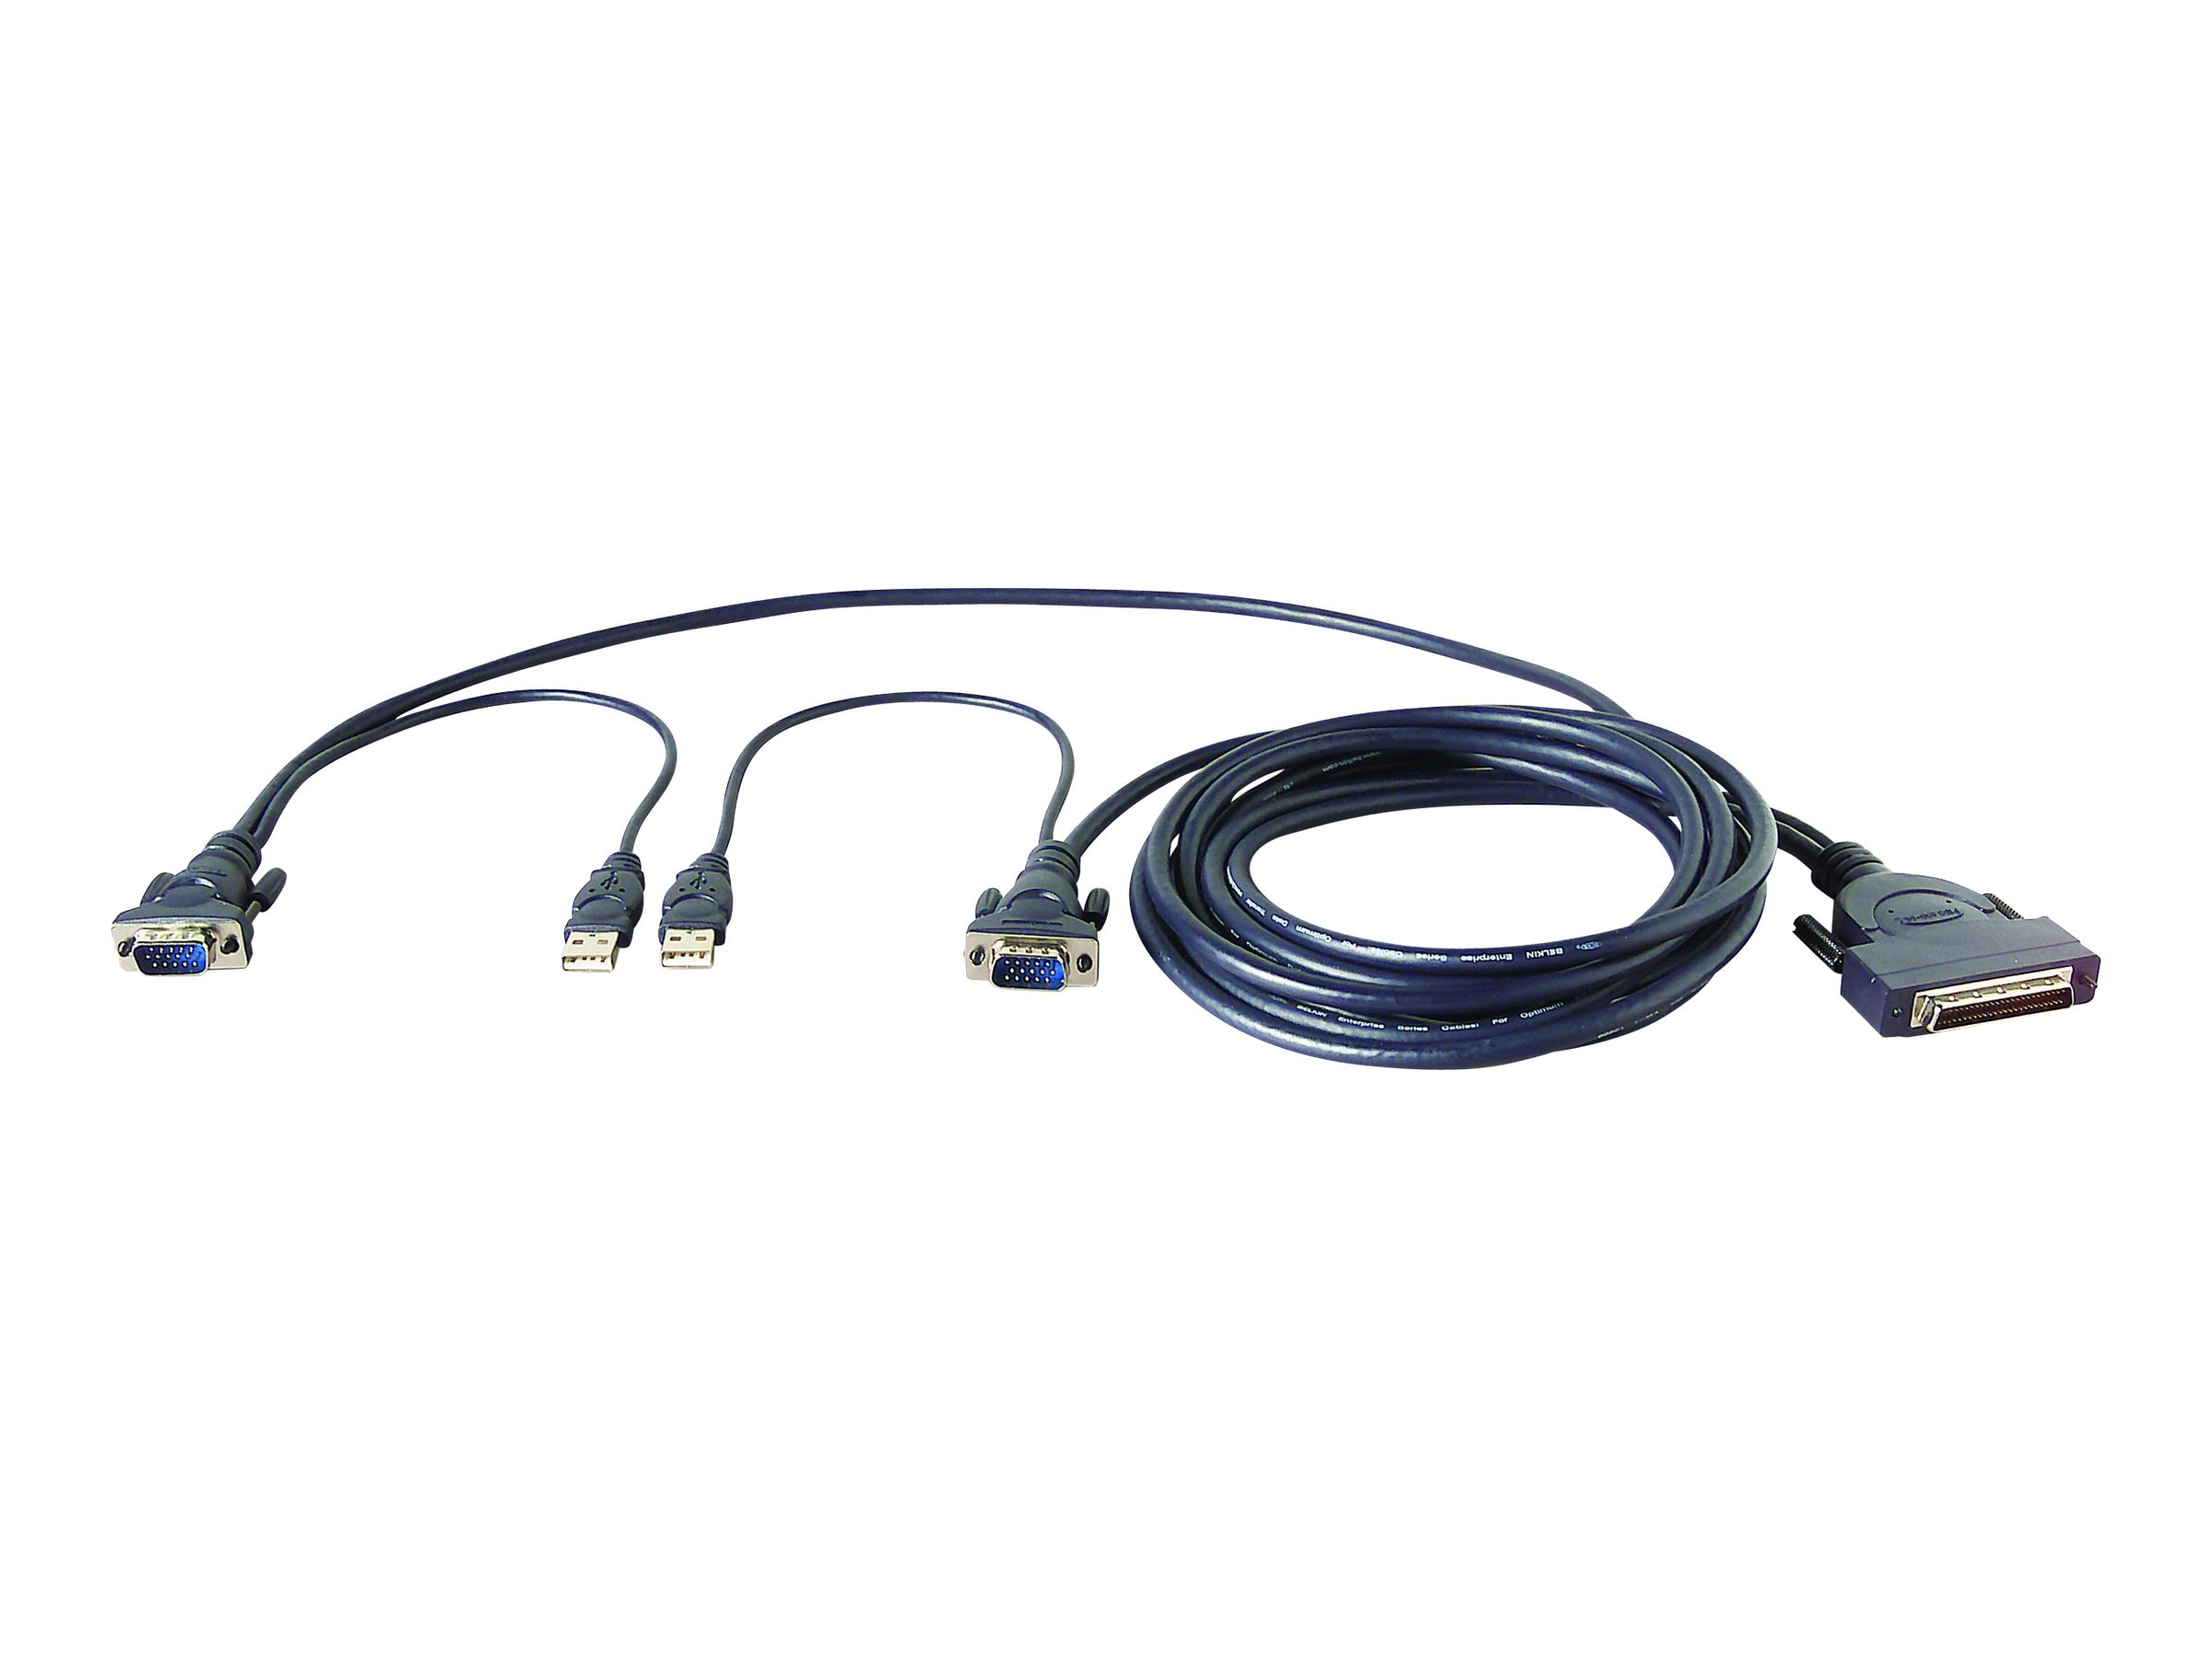 Belkin OmniView Enterprise Series Dual-Port USB KVM Cable, 6ft - bulk packaging, F1D9401-06